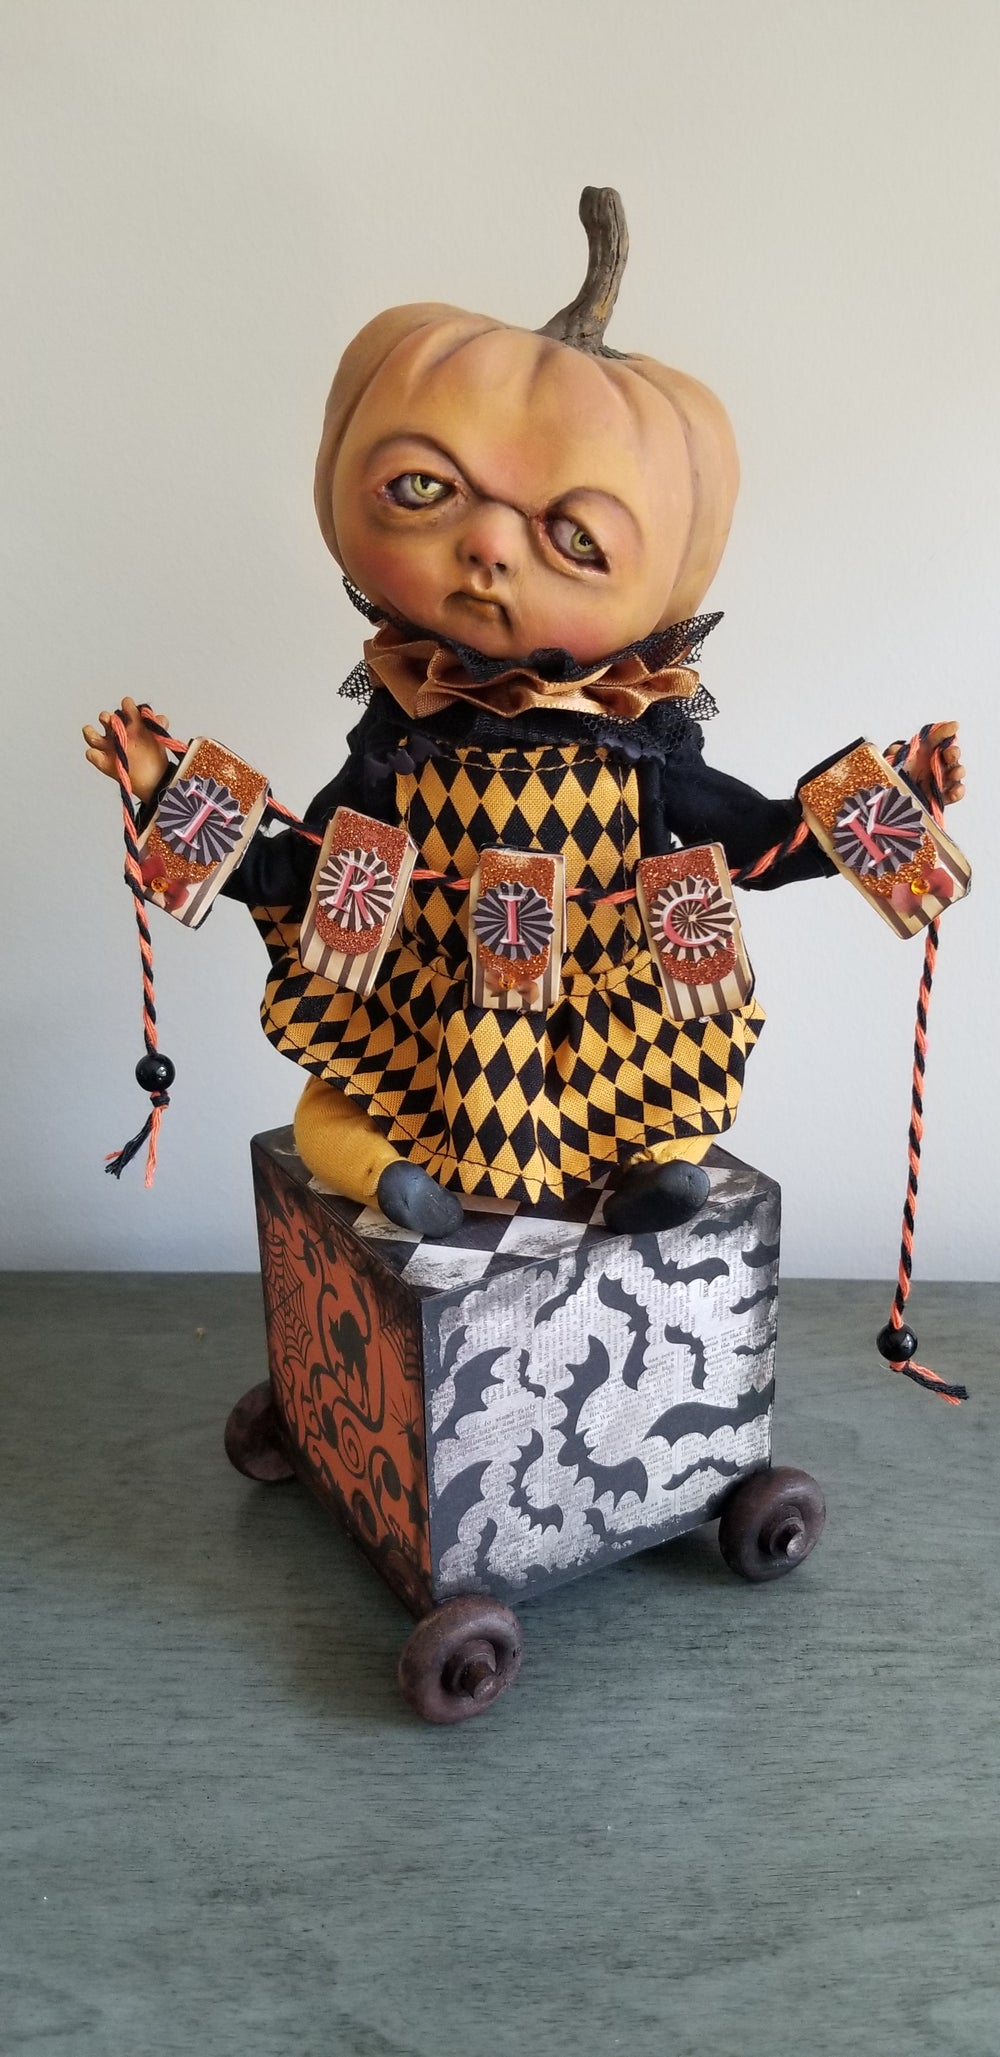 Image of Trick Pumpkin on the trolley